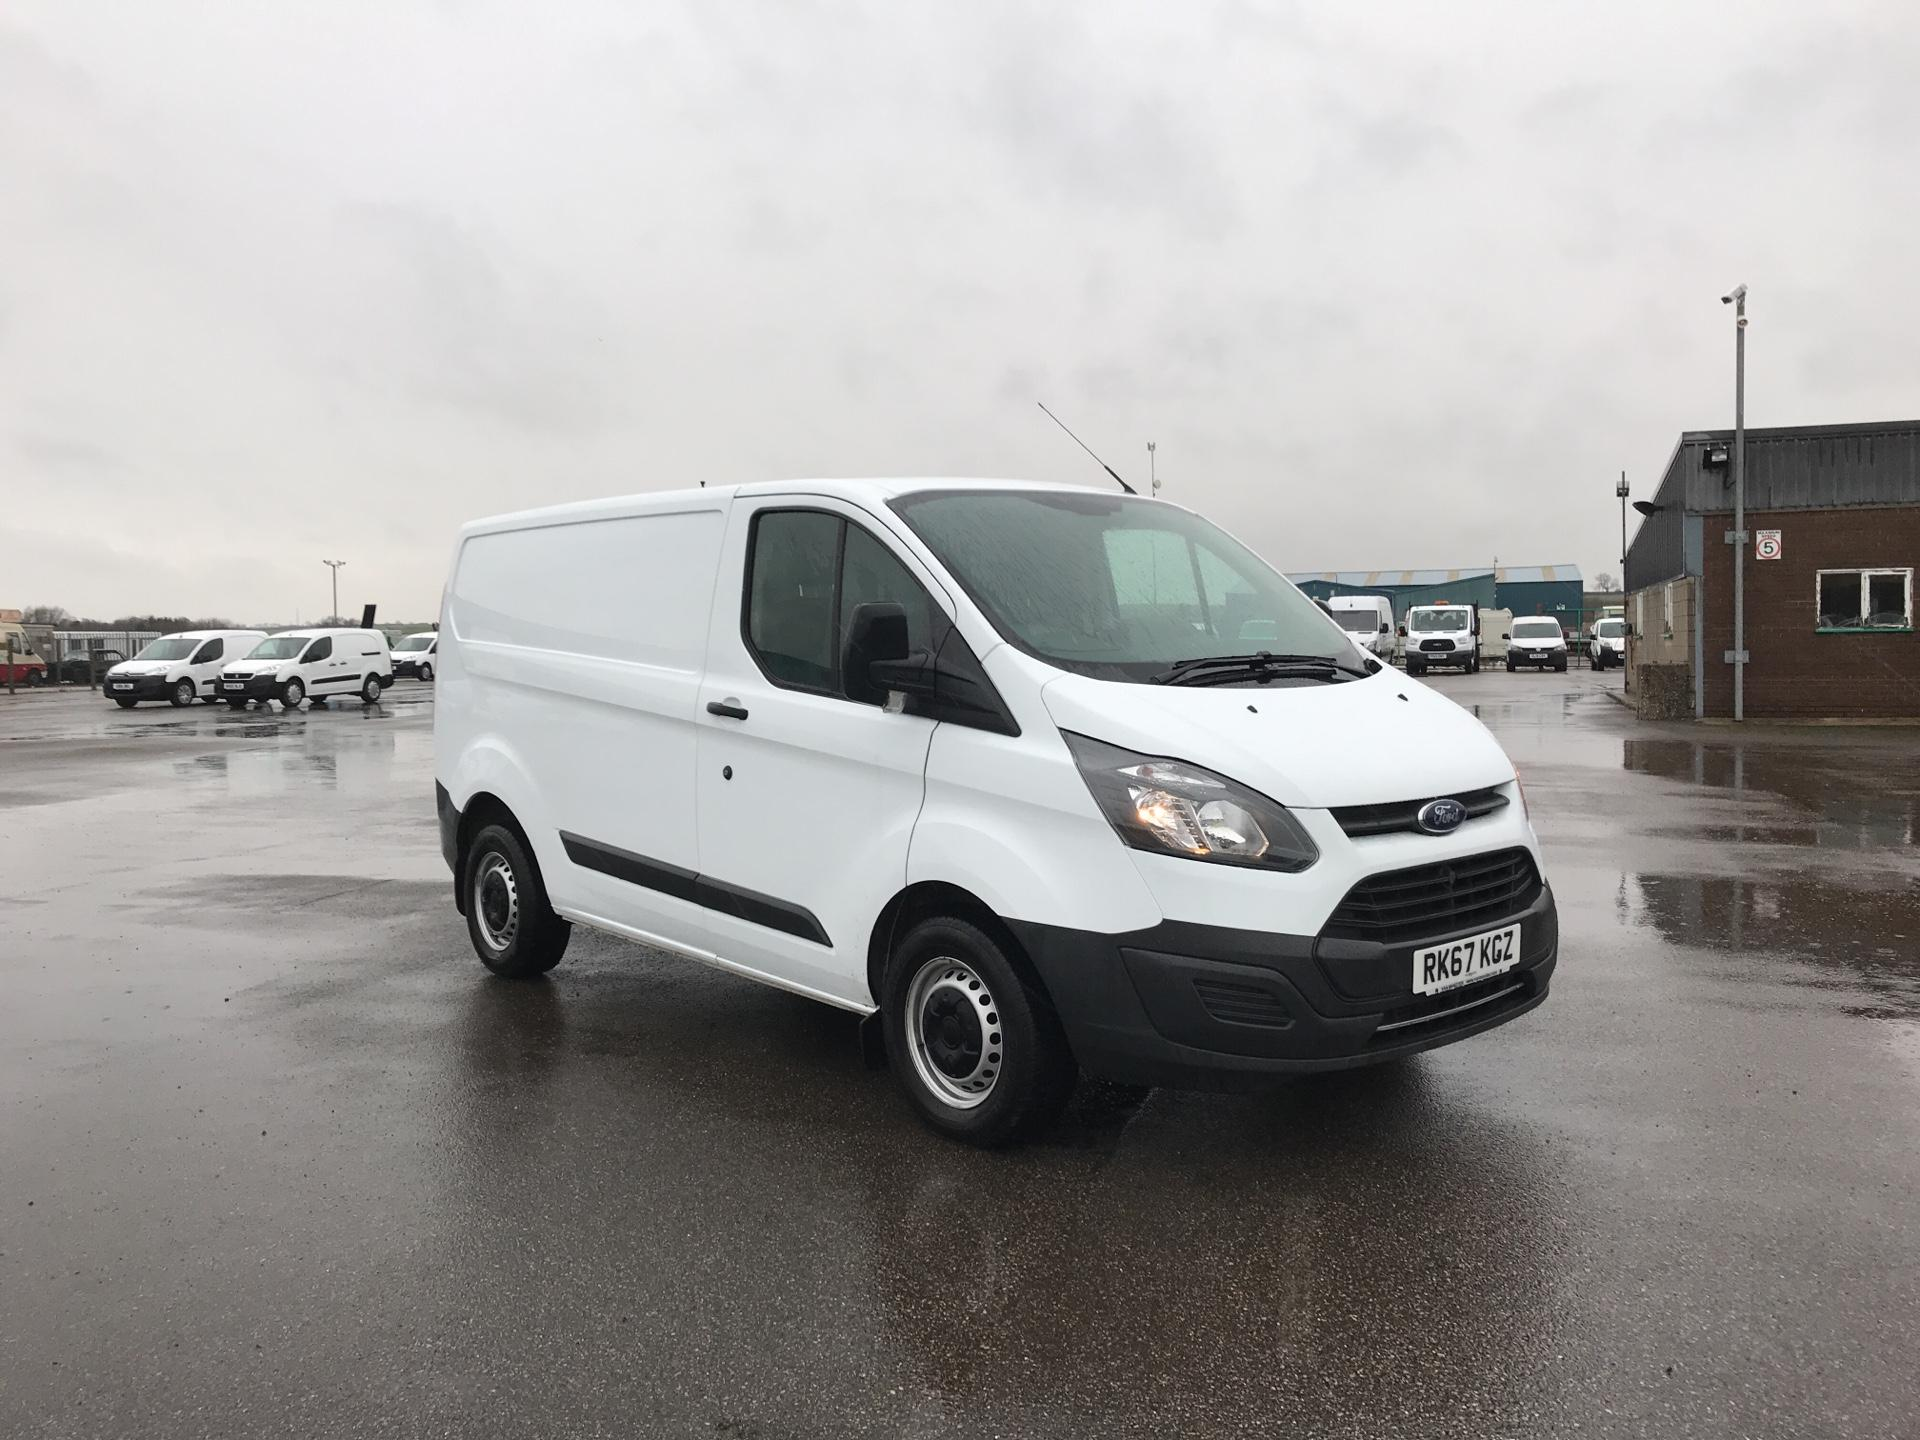 2017 Ford Transit Custom 270 L1 DIESEL FWD 2.0 TDCI 105PS LOW ROOF VAN EURO 6 (RK67KGZ)